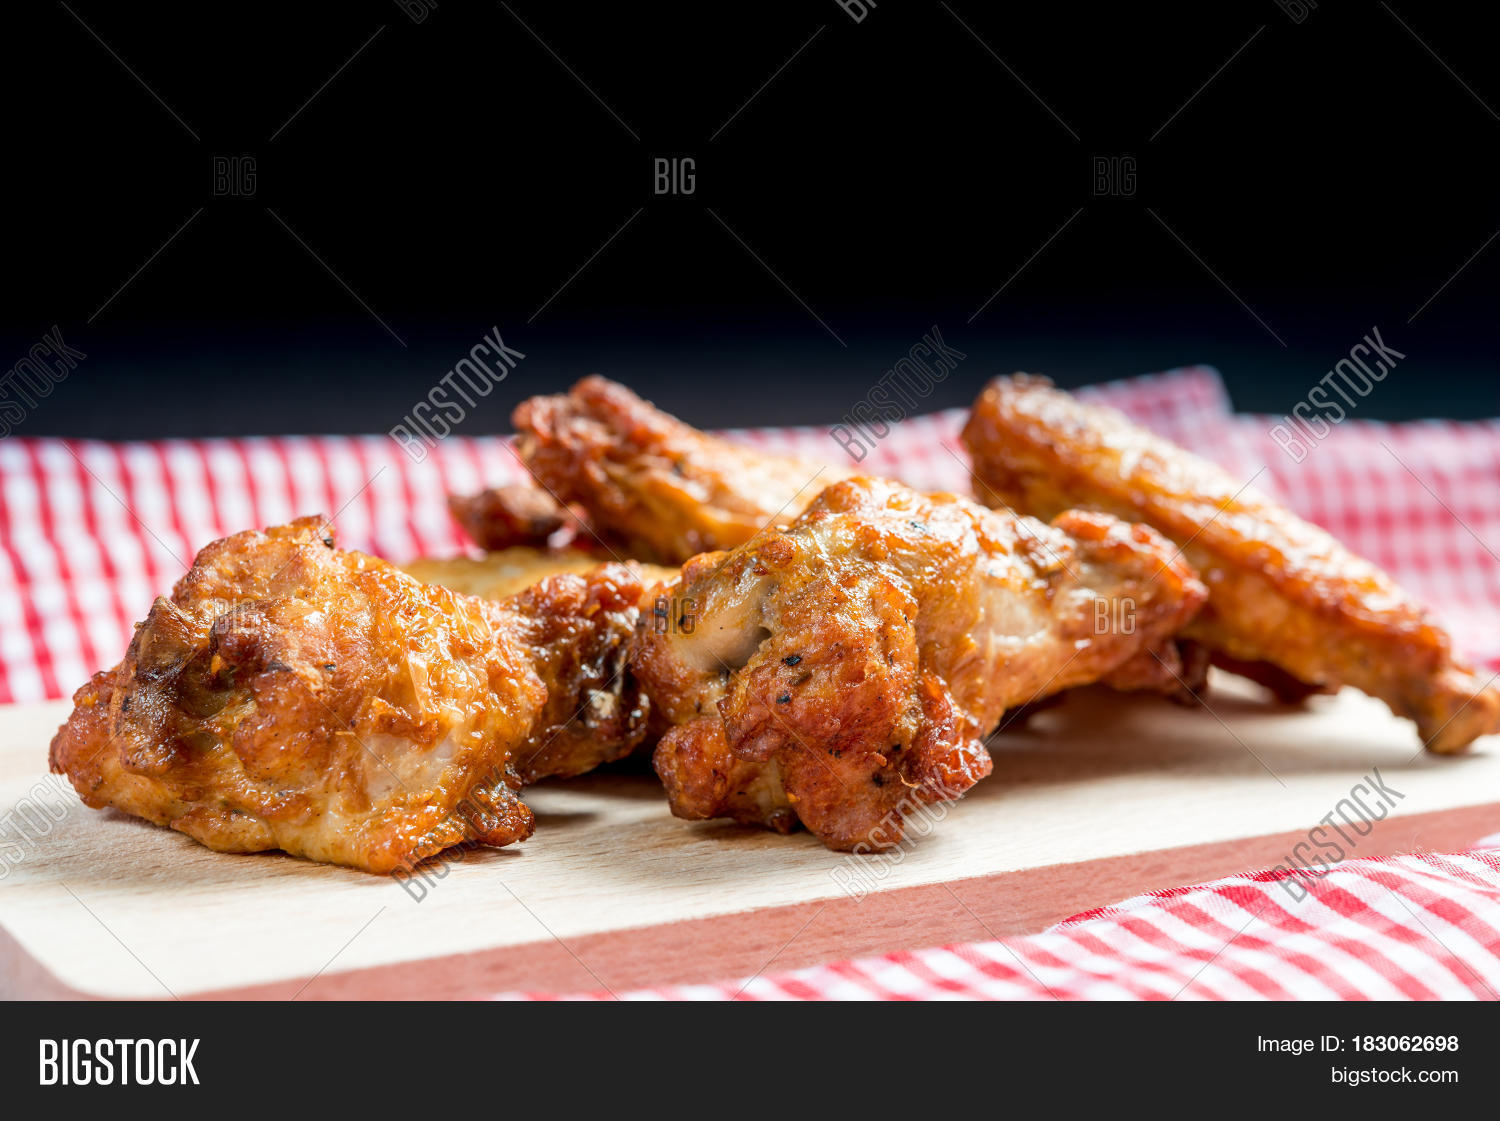 Delicious fried chicken wings on image photo bigstock for Table 52 fried chicken recipe